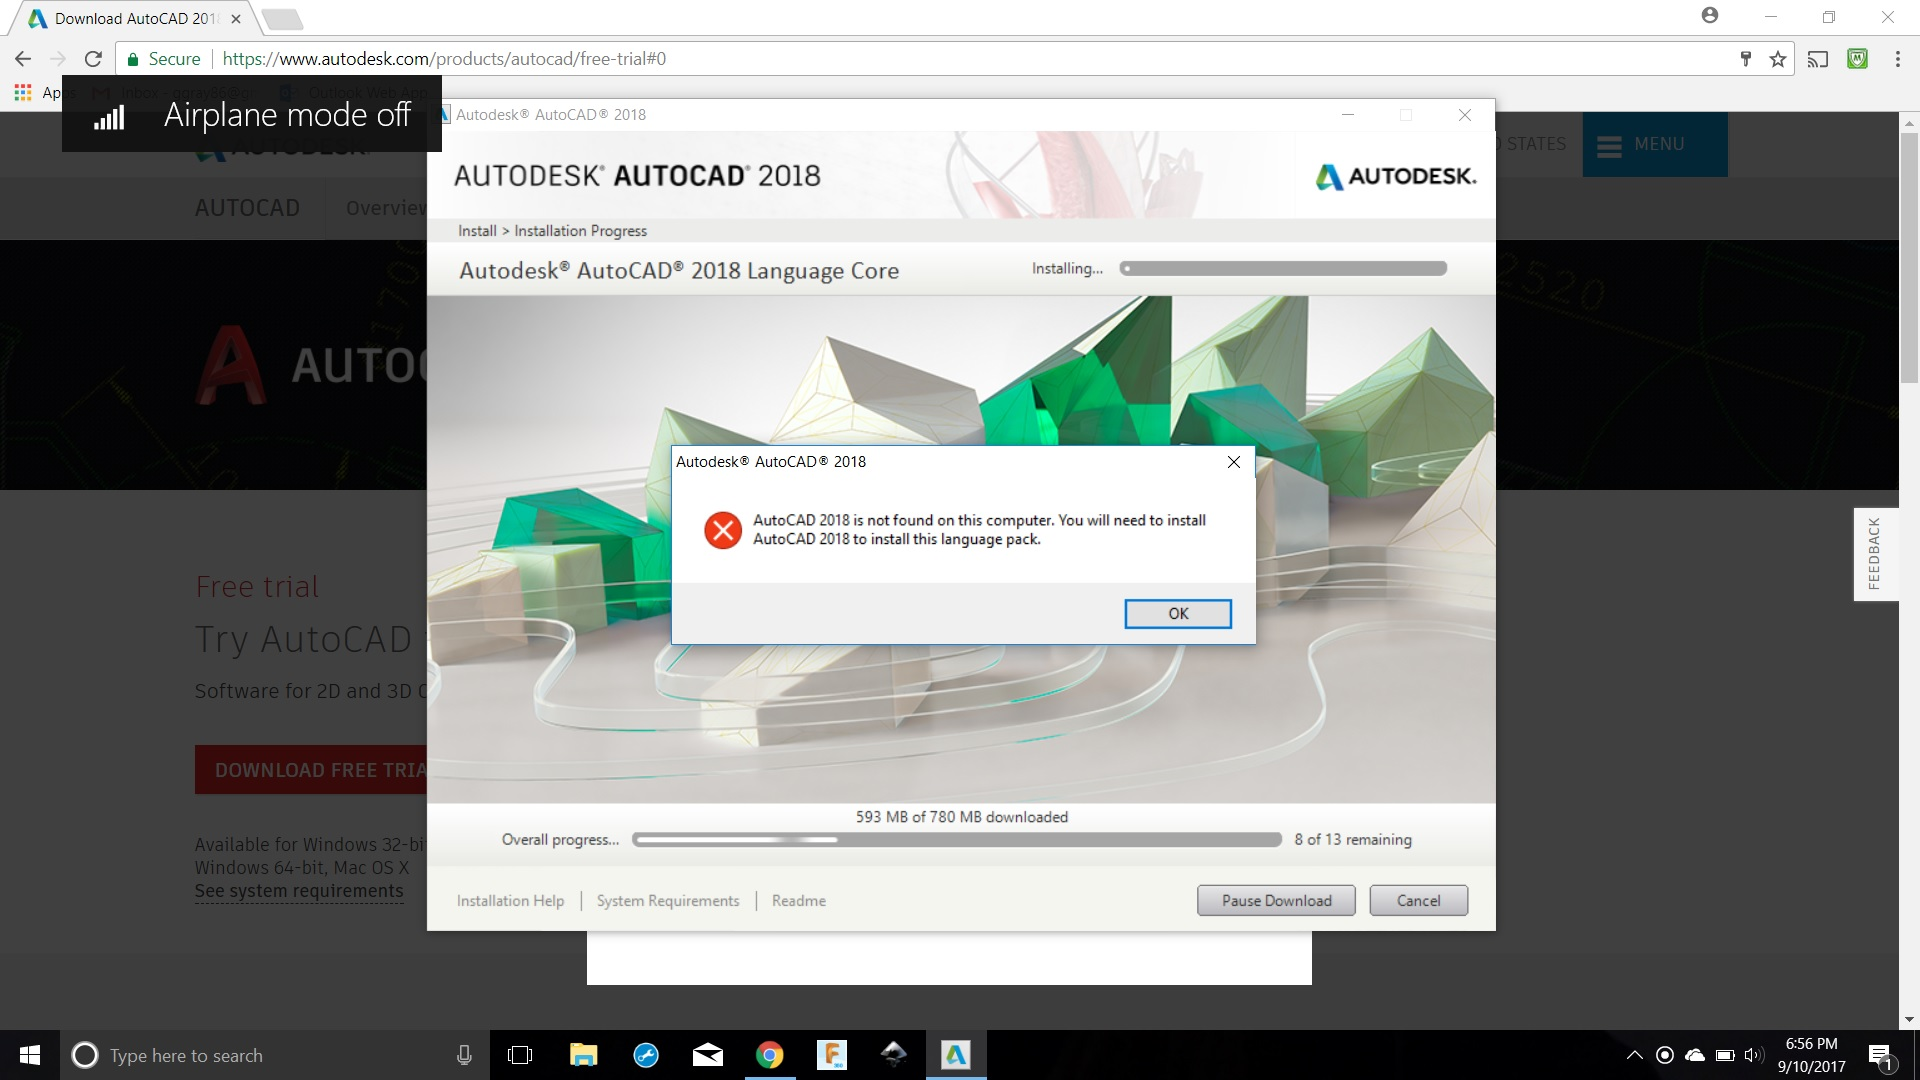 Autocad was used for rendering the remaining images - Autocad Was Used For Rendering The Remaining Images 16